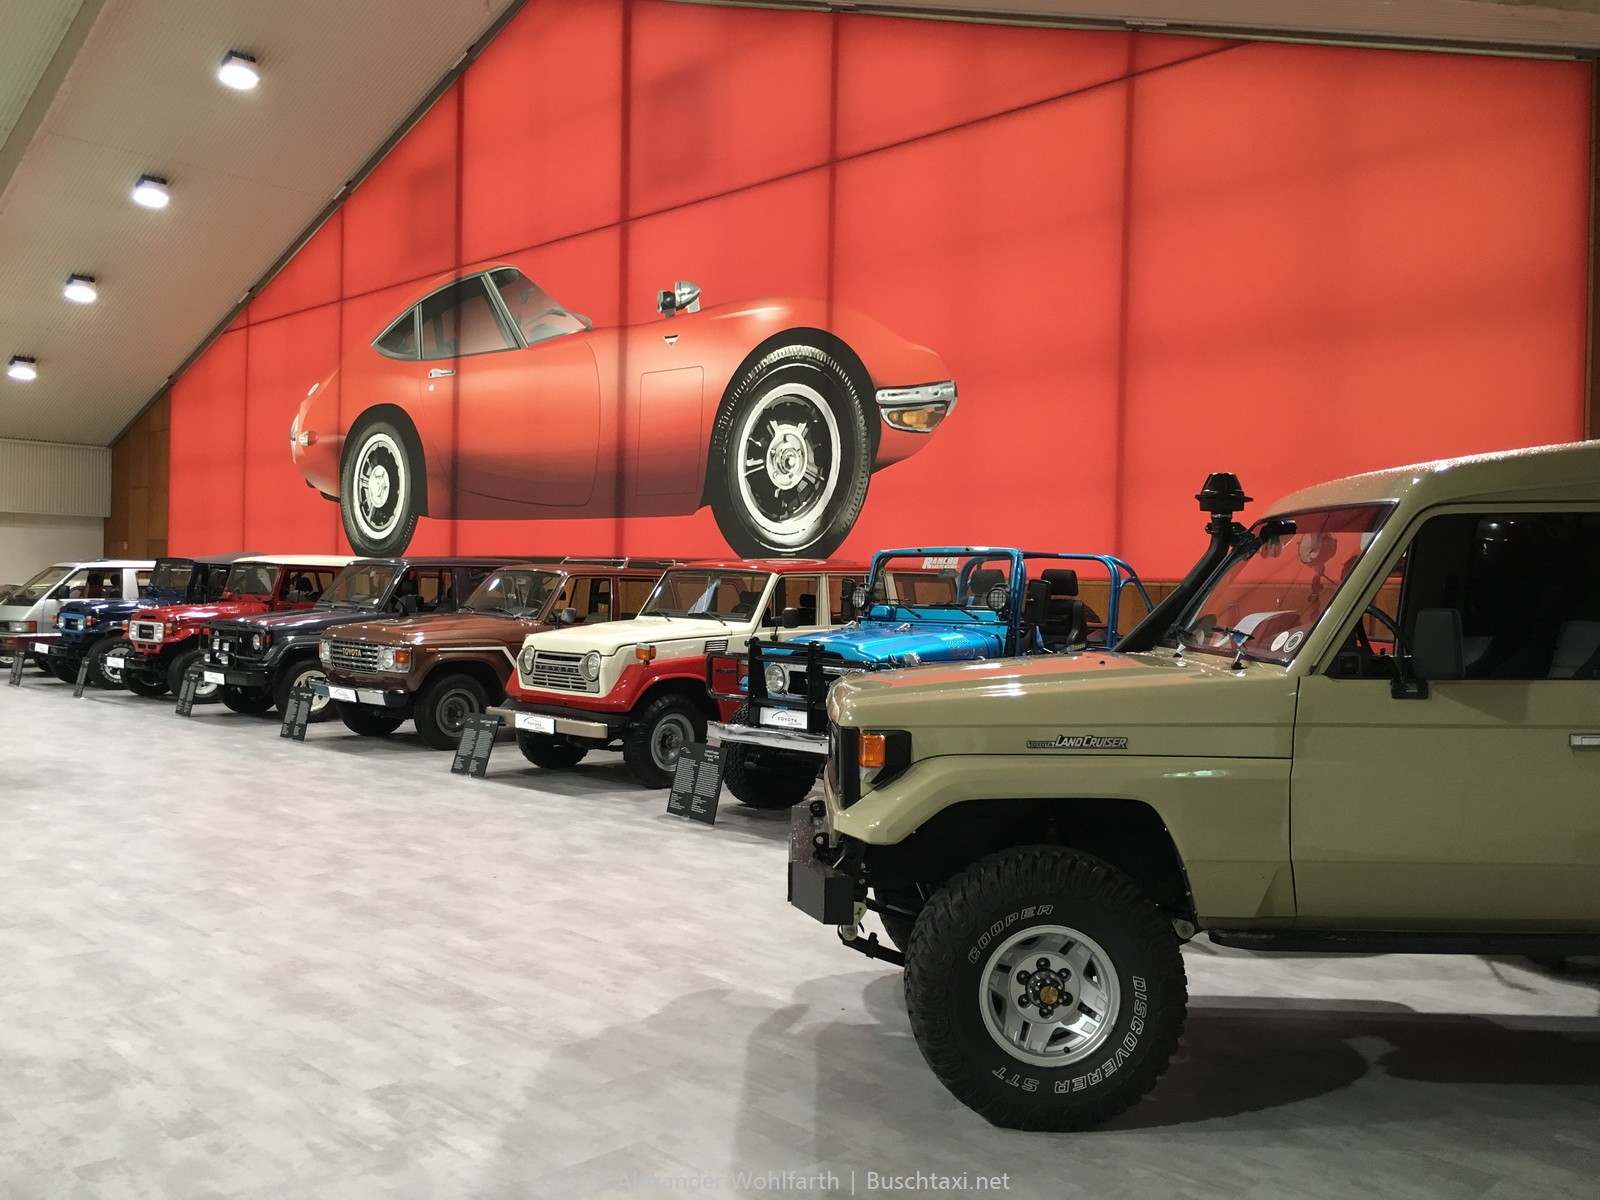 2017-11-23 toyota collection 02